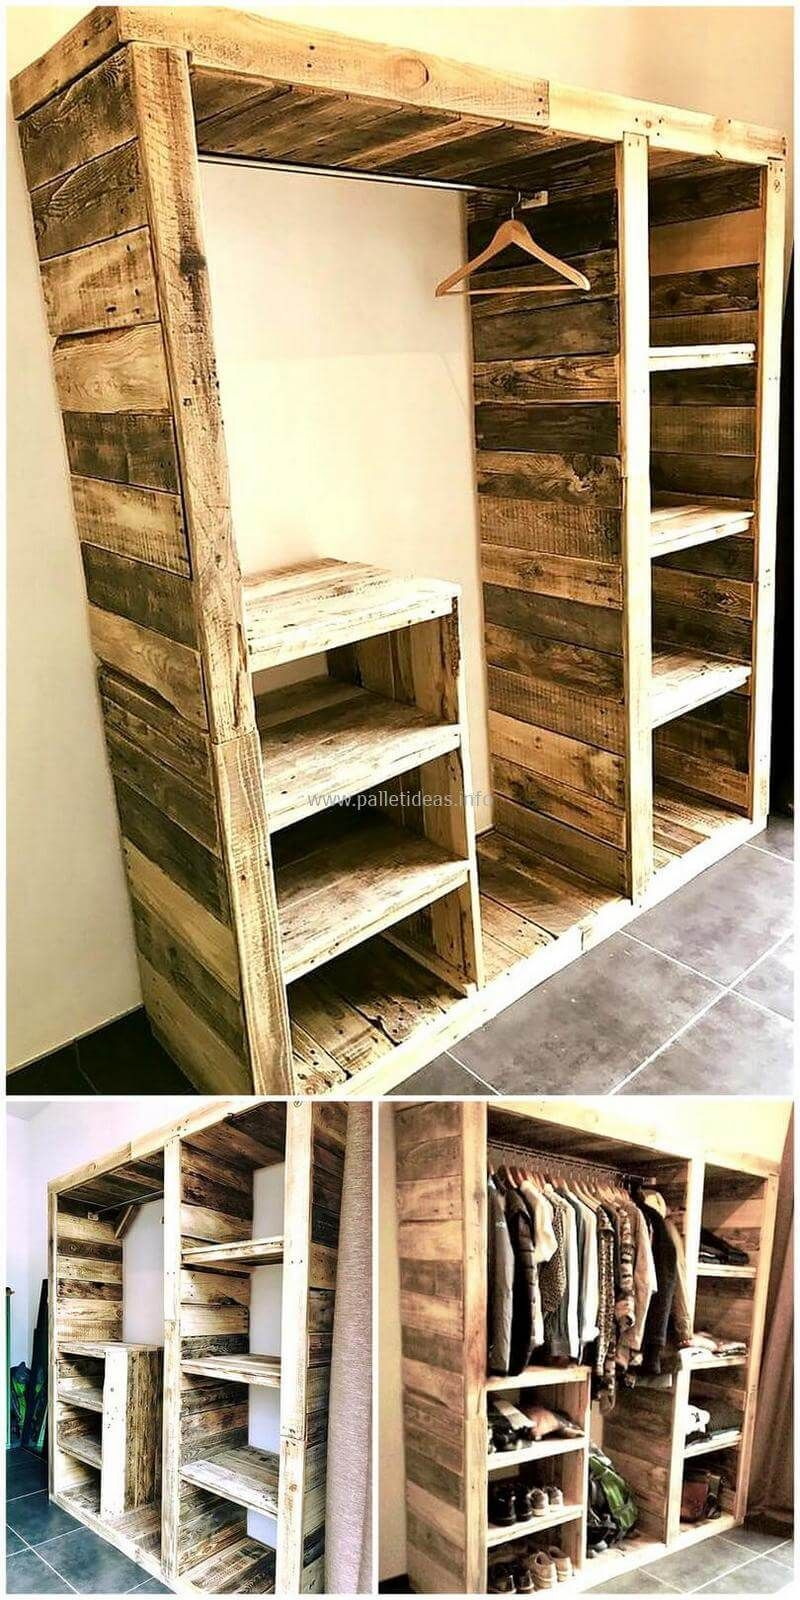 Now Become A Carpenter And Craft These Wonderful Wood Pallet